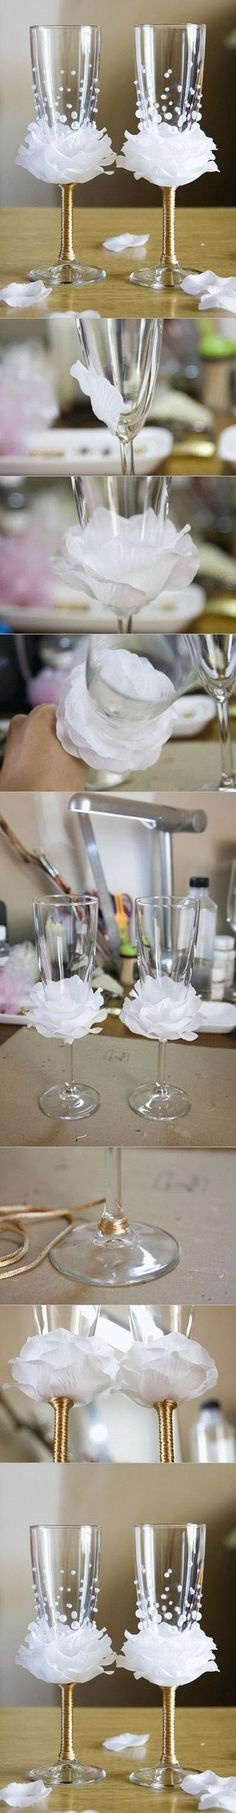 DIY Flower Bead Decorated Wine Glasses | DIY & Crafts Tutorials